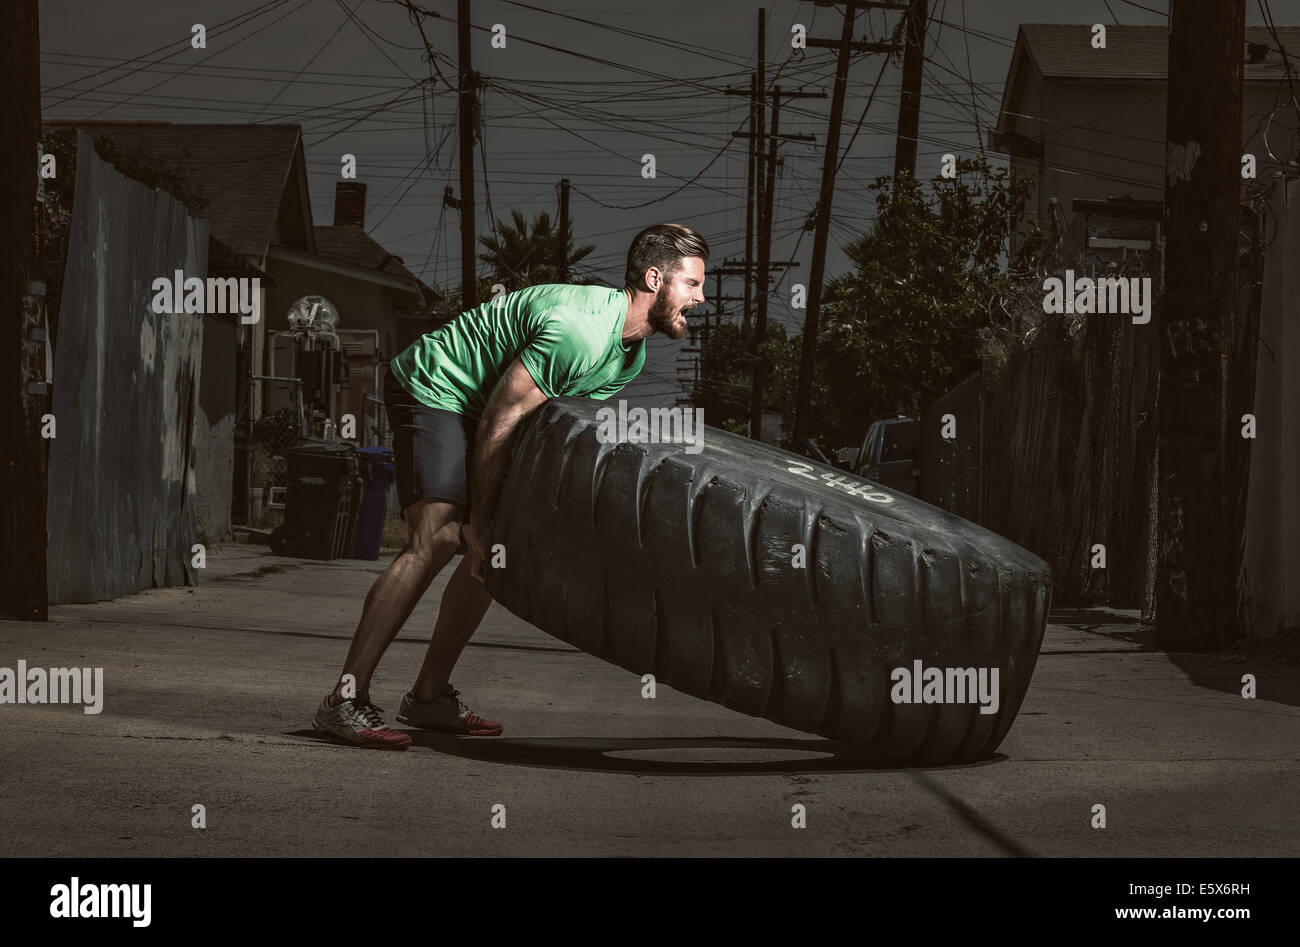 Young adult man lifting large tire - Stock Image